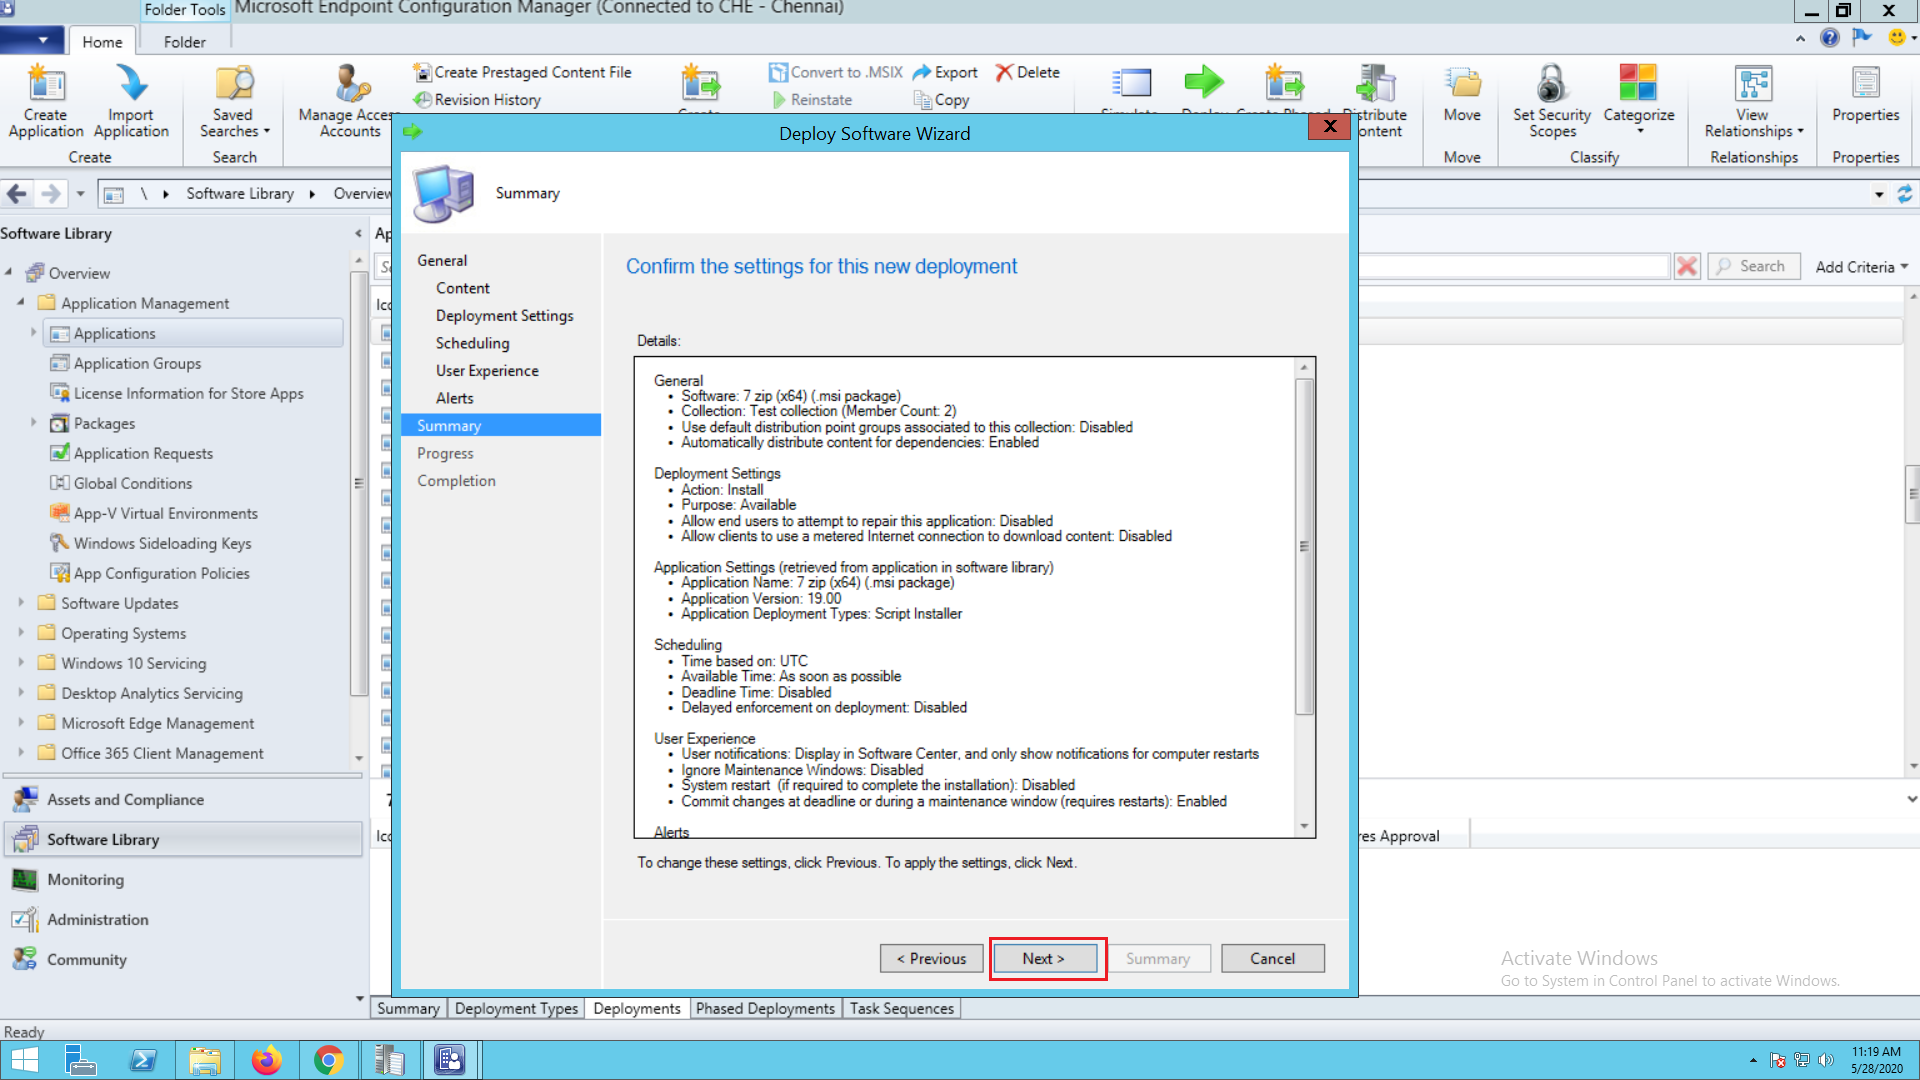 Step by step application deployment in SCCM - ManageEngine Patch Connect Plus